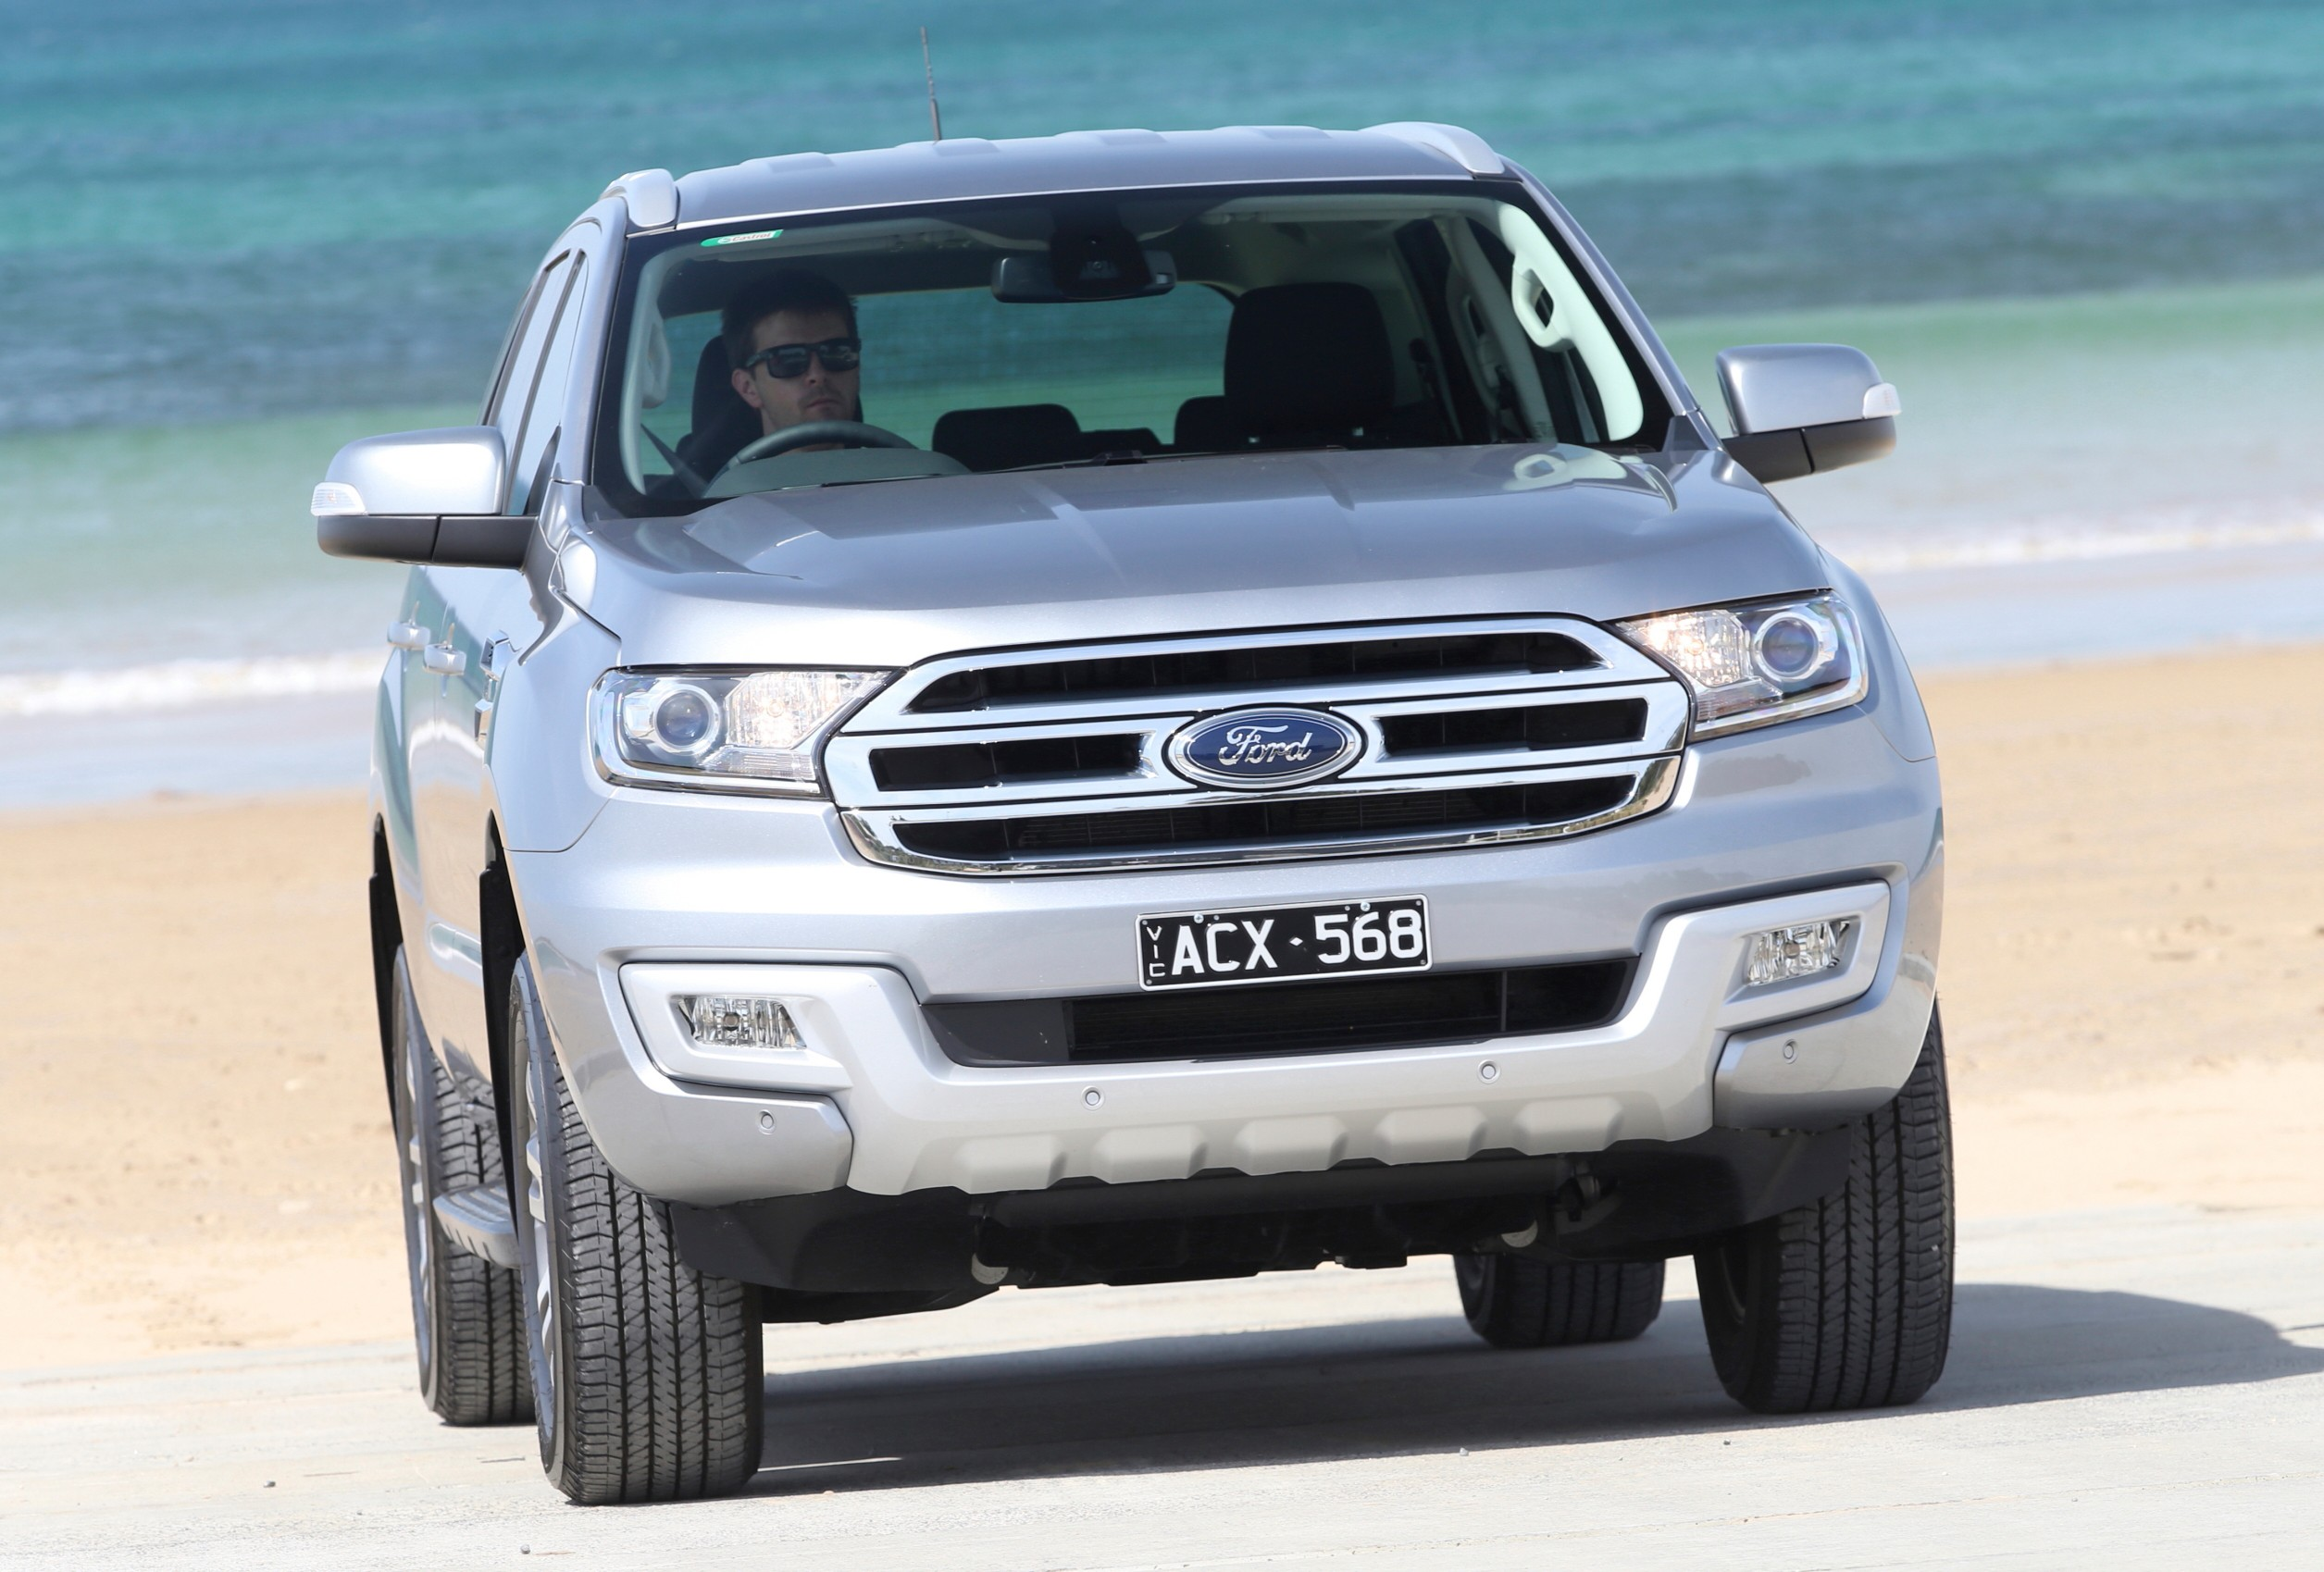 2017 Ford Bronco >> 2020 Ford Bronco Test Mule Spied Flaunting Everest Body Shell - autoevolution